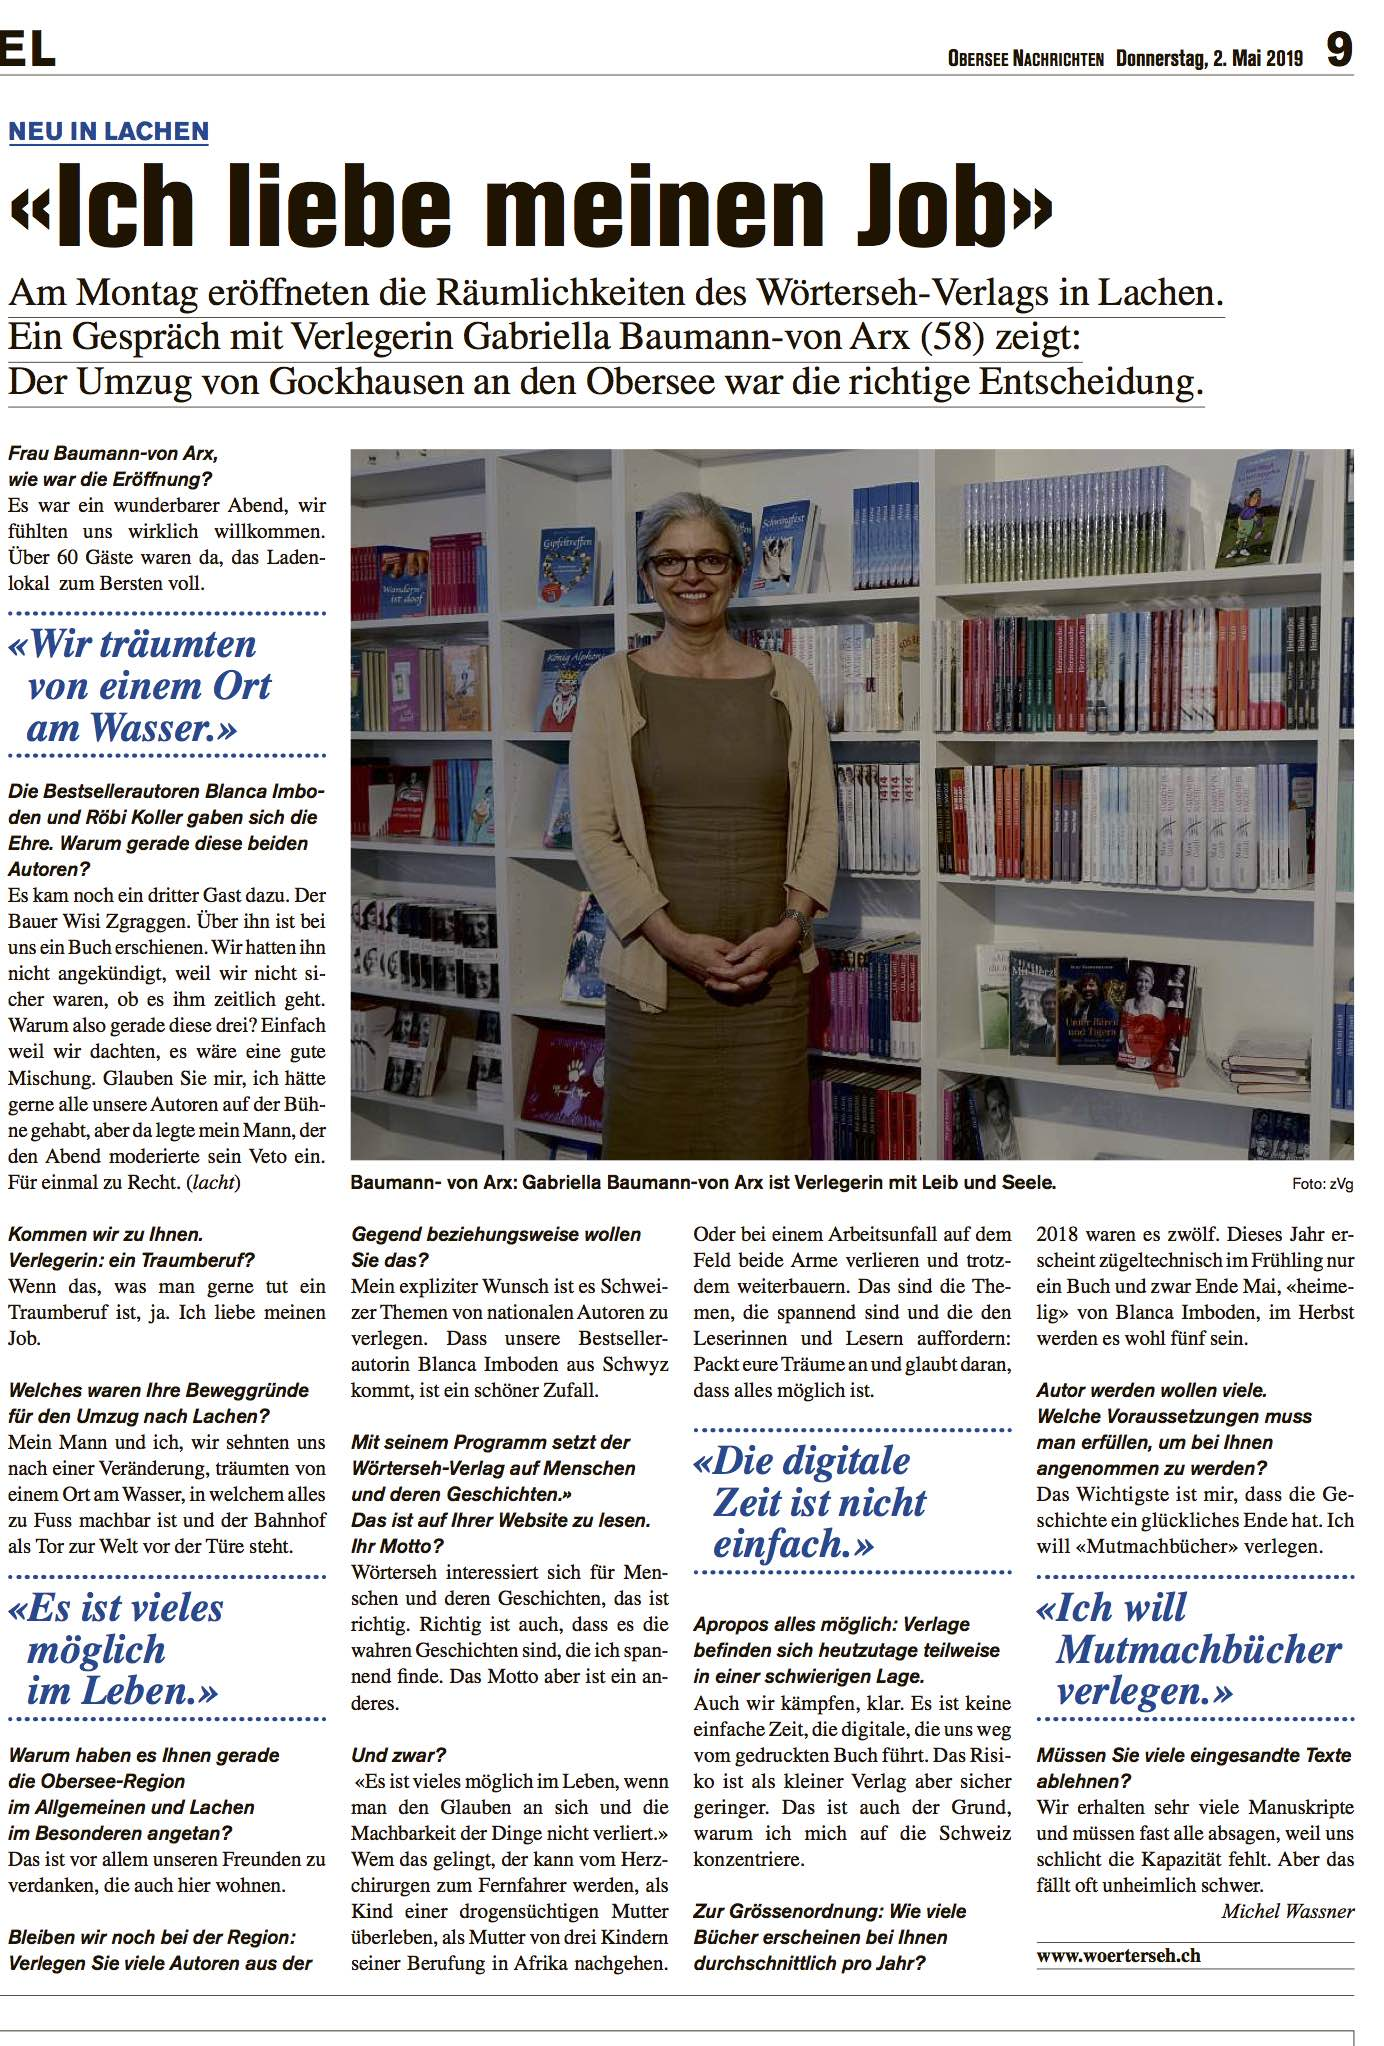 Home - Leading Swiss law firm with an international focus and